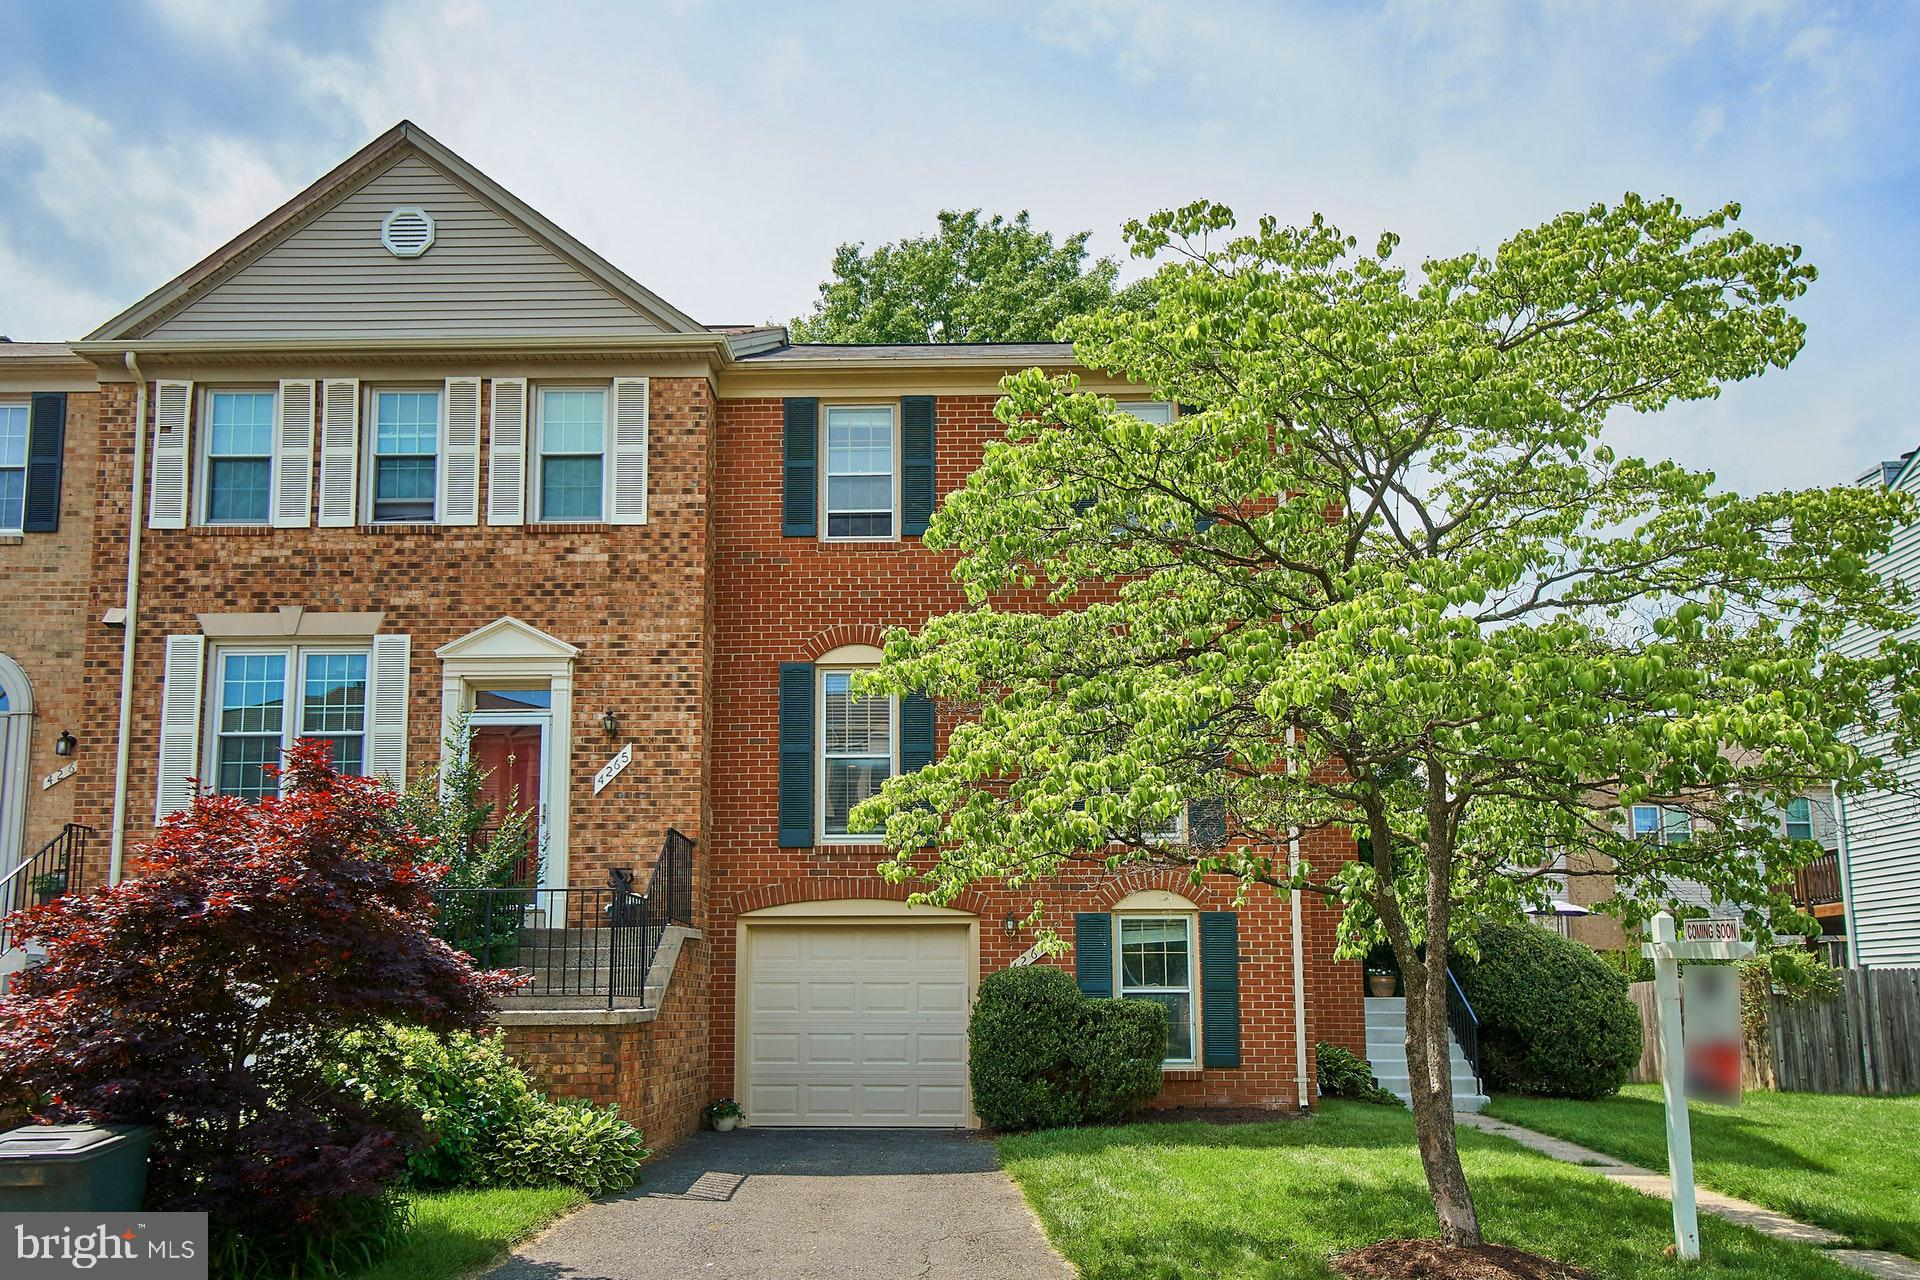 Open House, Sunday, 5/26 from 1-4pm. Enjoy this end-unit townhome in the Fair Ridge Neighborhood. Great natural light, good room sizes, garage parking and storage make this home a wonderful place to live and entertain. Hardwood floors, new light fixtures, granite counters and stainless steel appliances are some of the highlights. Newer hvac and roof. Deck off kitchen and a fully fenced patio. This home is conveniently location near restaurants, shopping, grocery and parks. You can avoid the car and embrace the walkability and fresh air. Spend time at the pool, playground or on the walking trails.